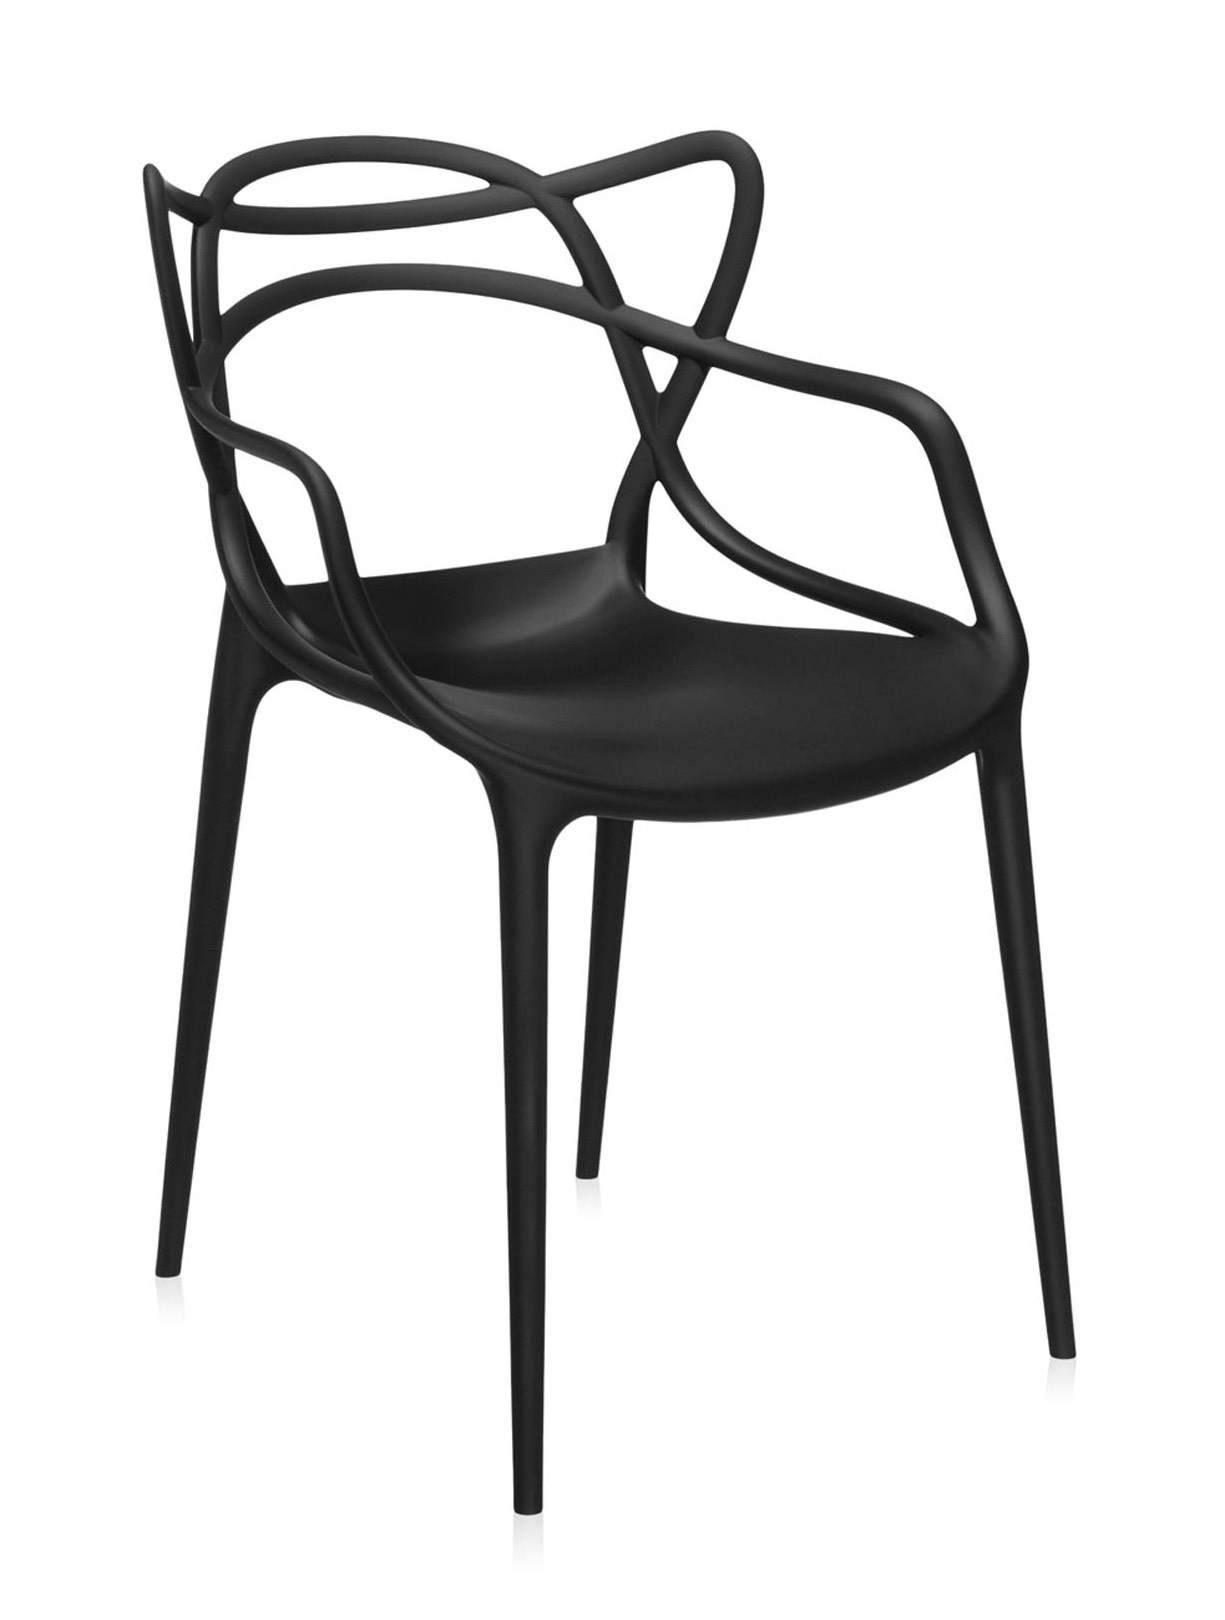 Kartell Masters Chair Priced Each Sold in Sets of 4 Modern Planet